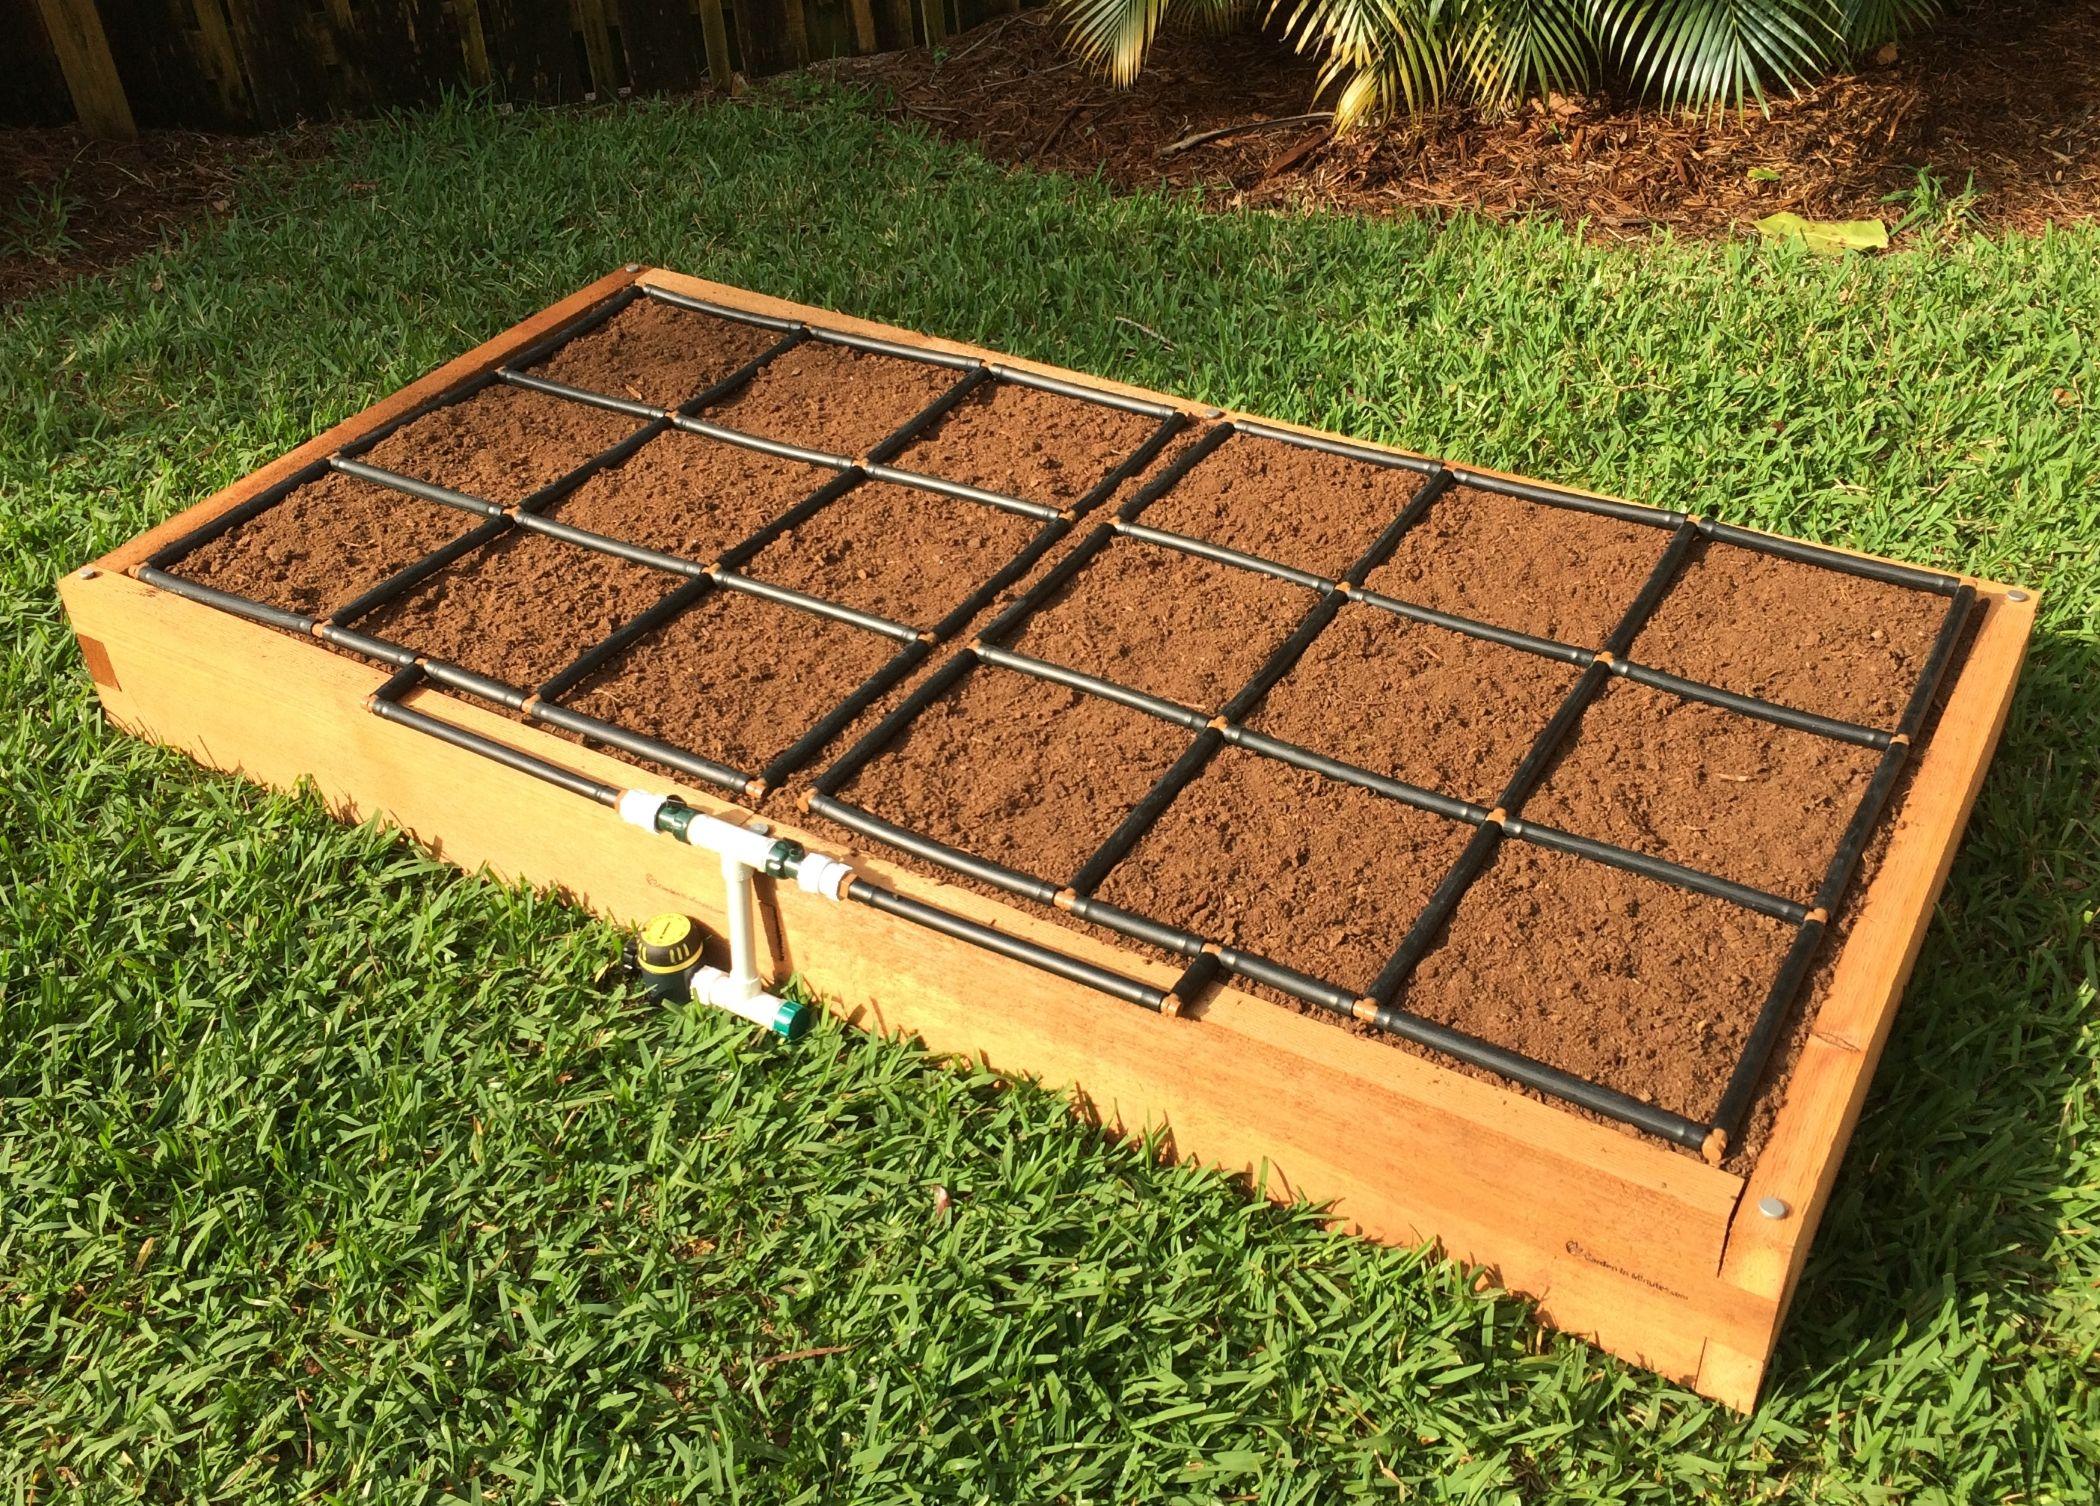 Toolfree, Cedar Raised Garden Bed Kits w/ Irrigation. We